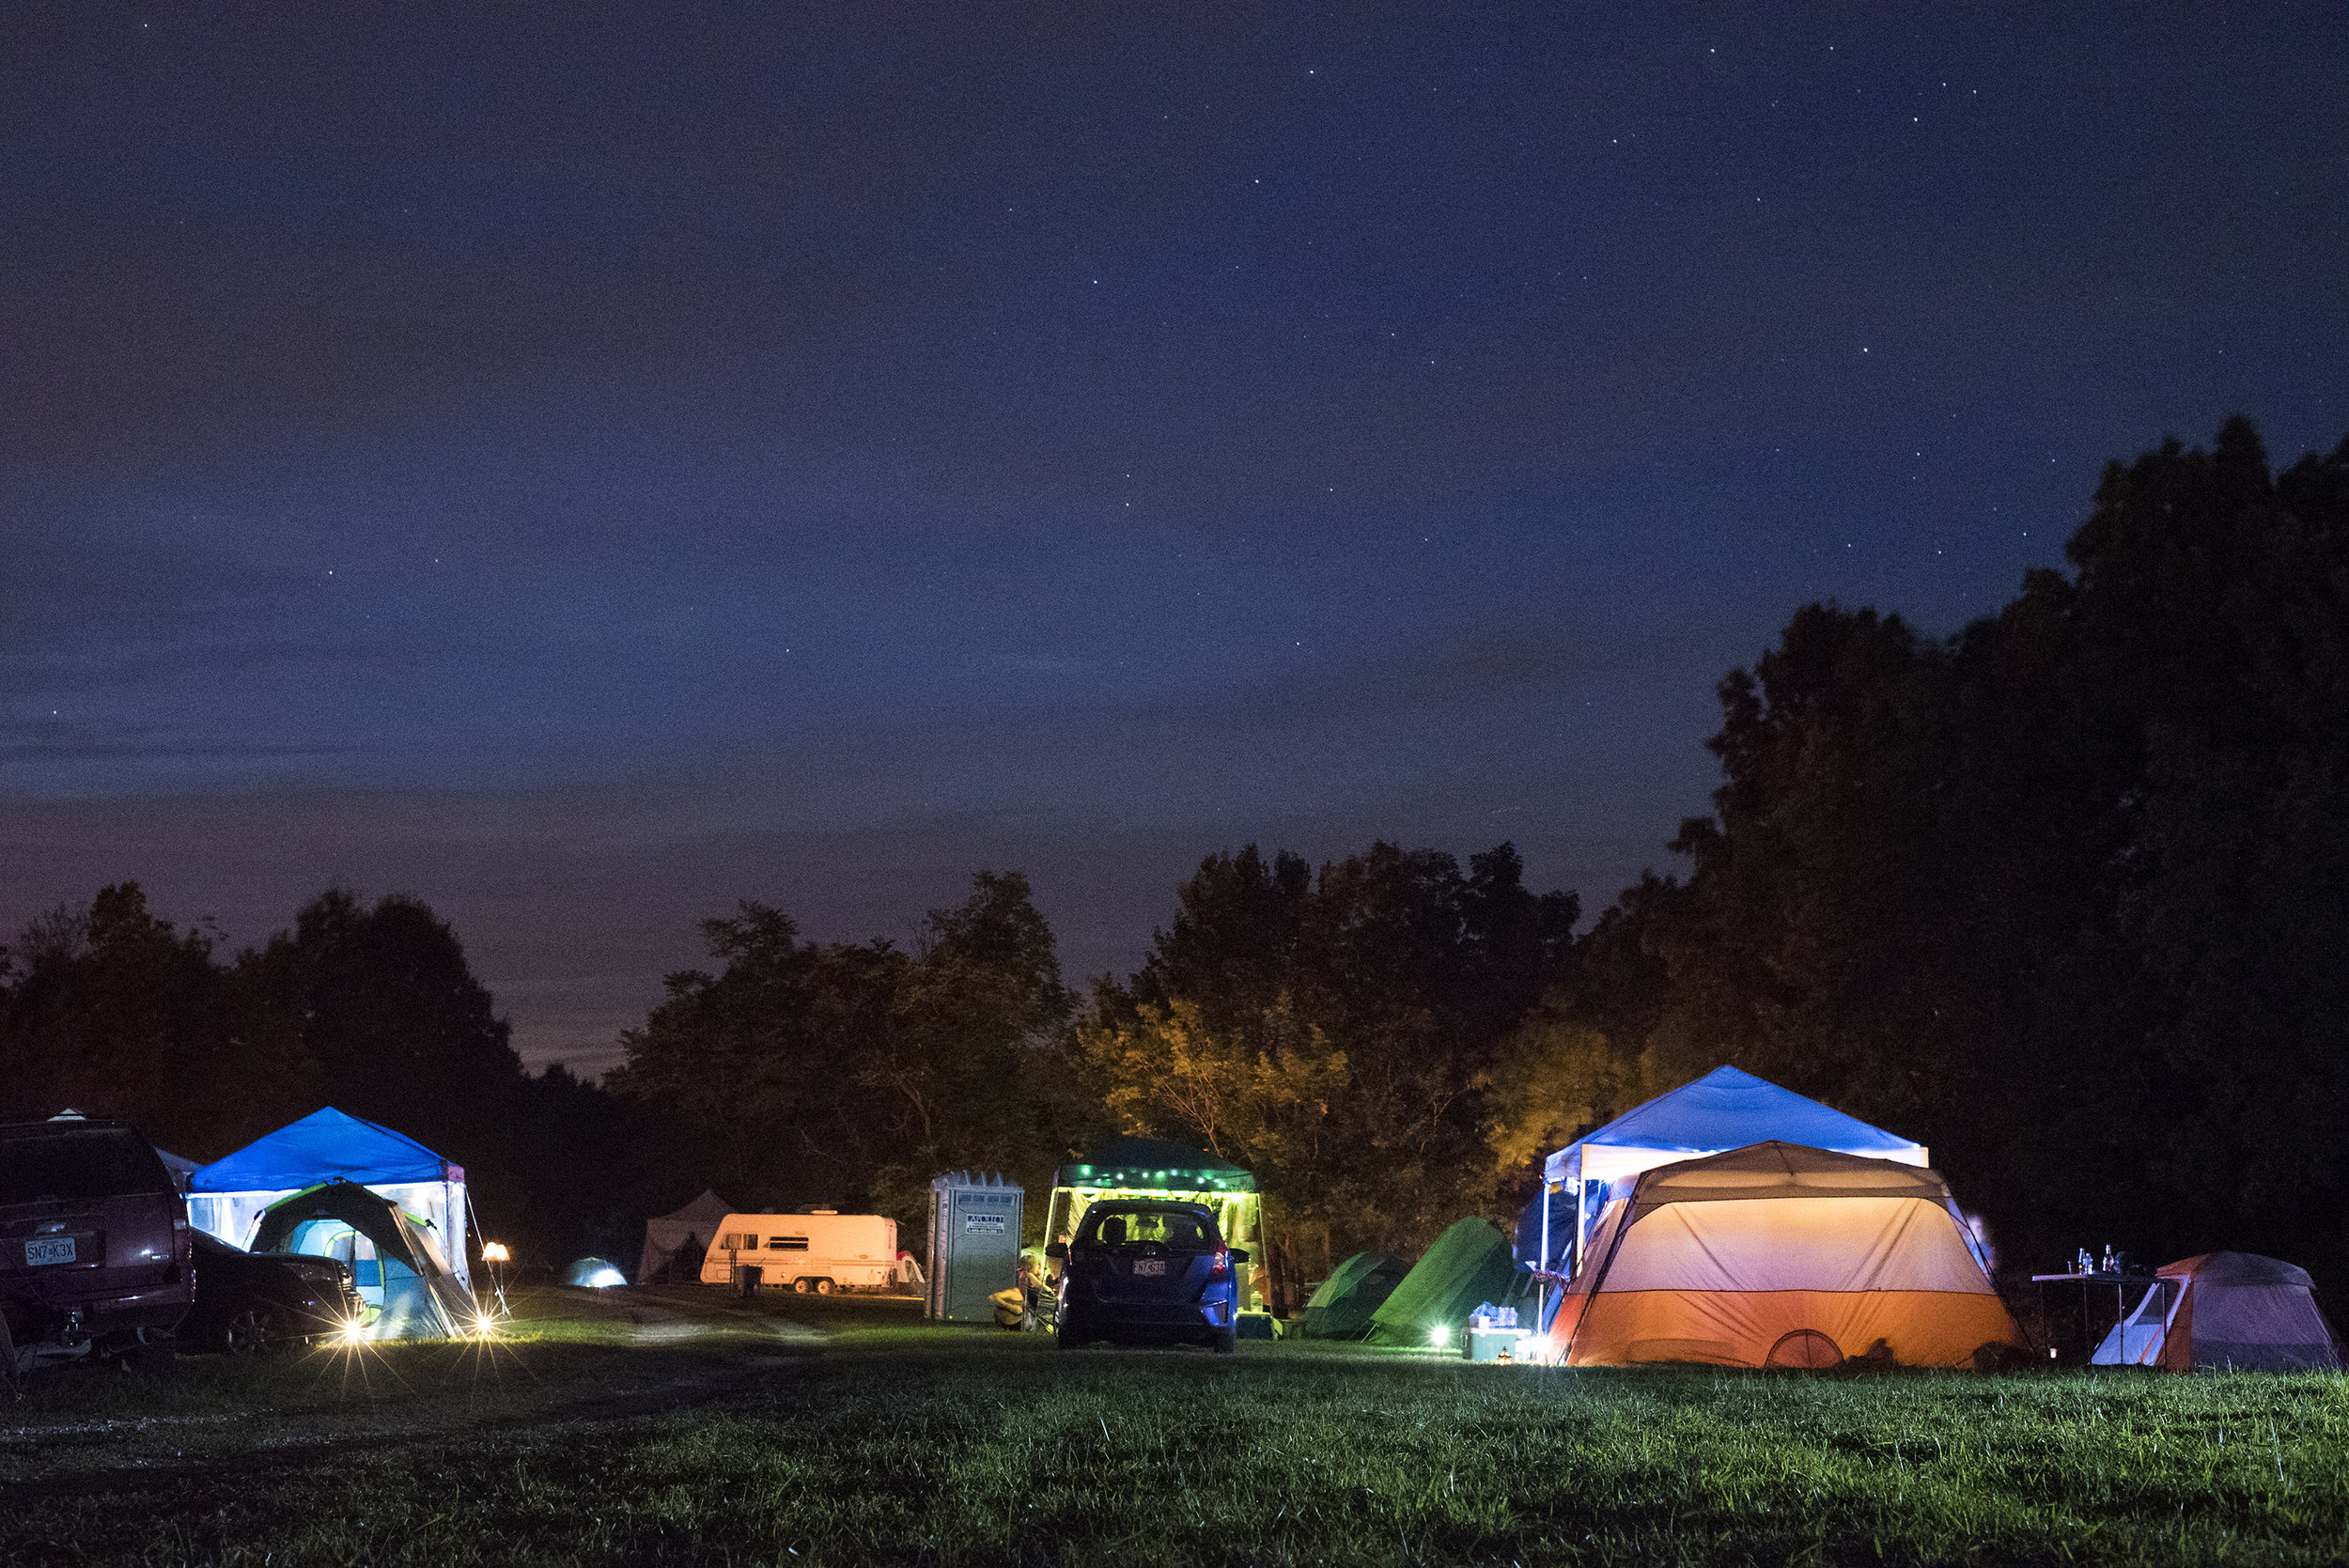 Pagans camp on the property of Oak Spirit Sanctuary the night before the total solar eclipse on Sunday, August 21, 2017.